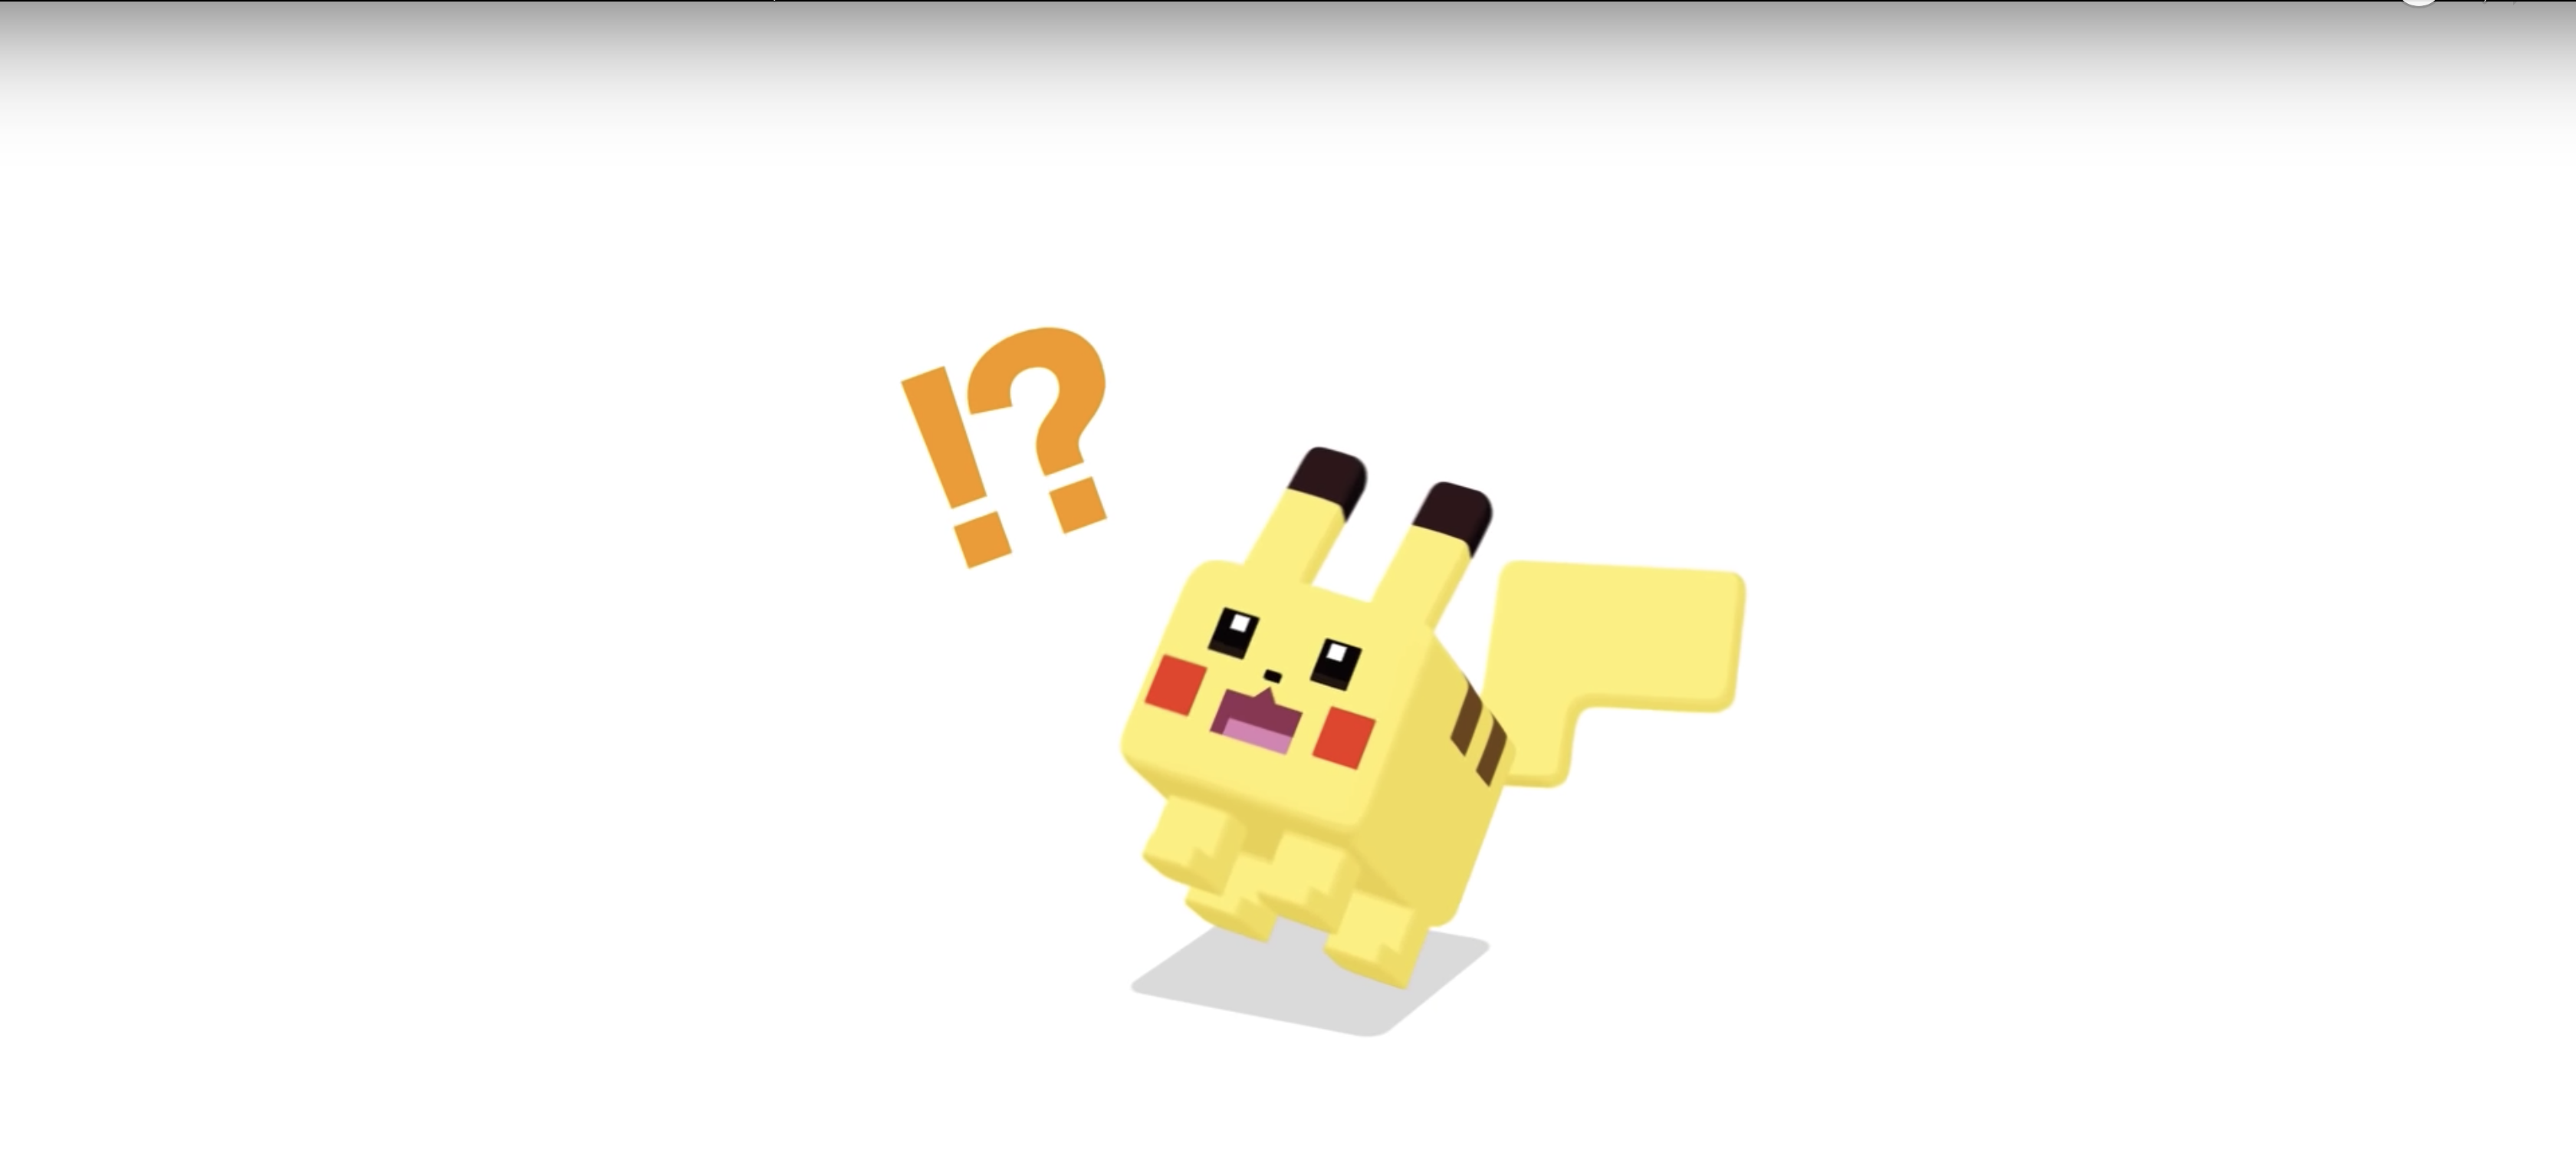 pokémon evolueren in pokemon quest